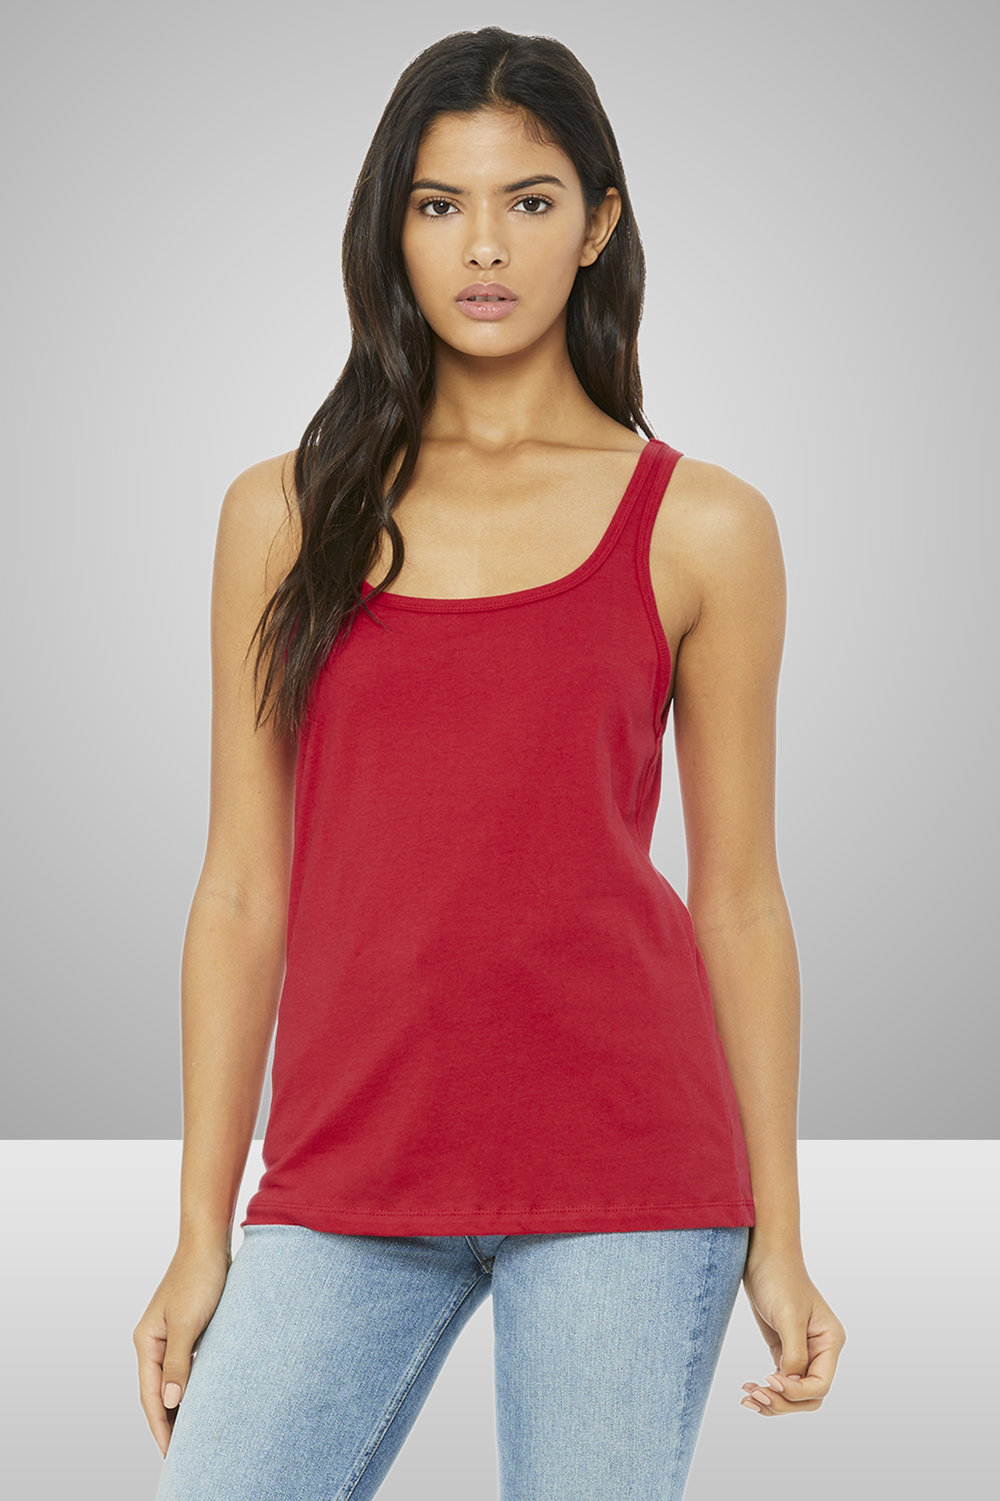 Bella+Canvas Ladies' Relaxed Jersey Tank    $10.23 each for 25 items one color front or back